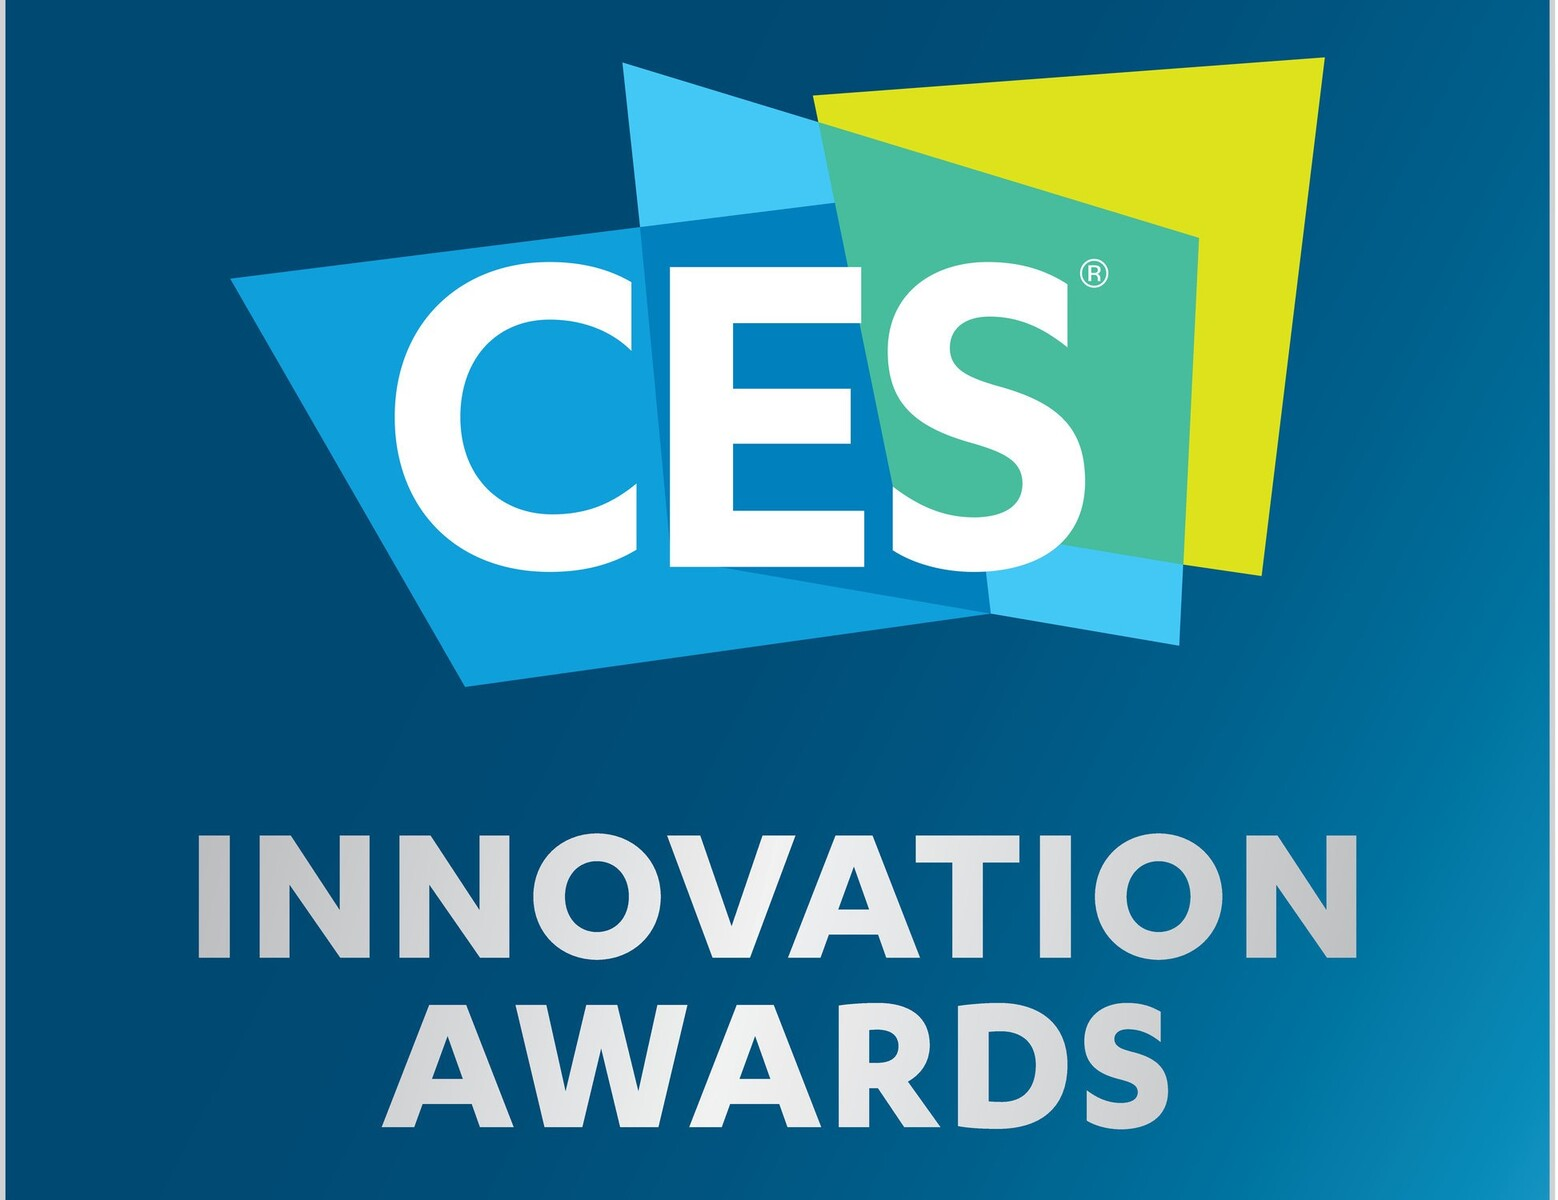 Csm Summer Classes 2020.The Cta Announces Several Ces 2020 Award Winners And